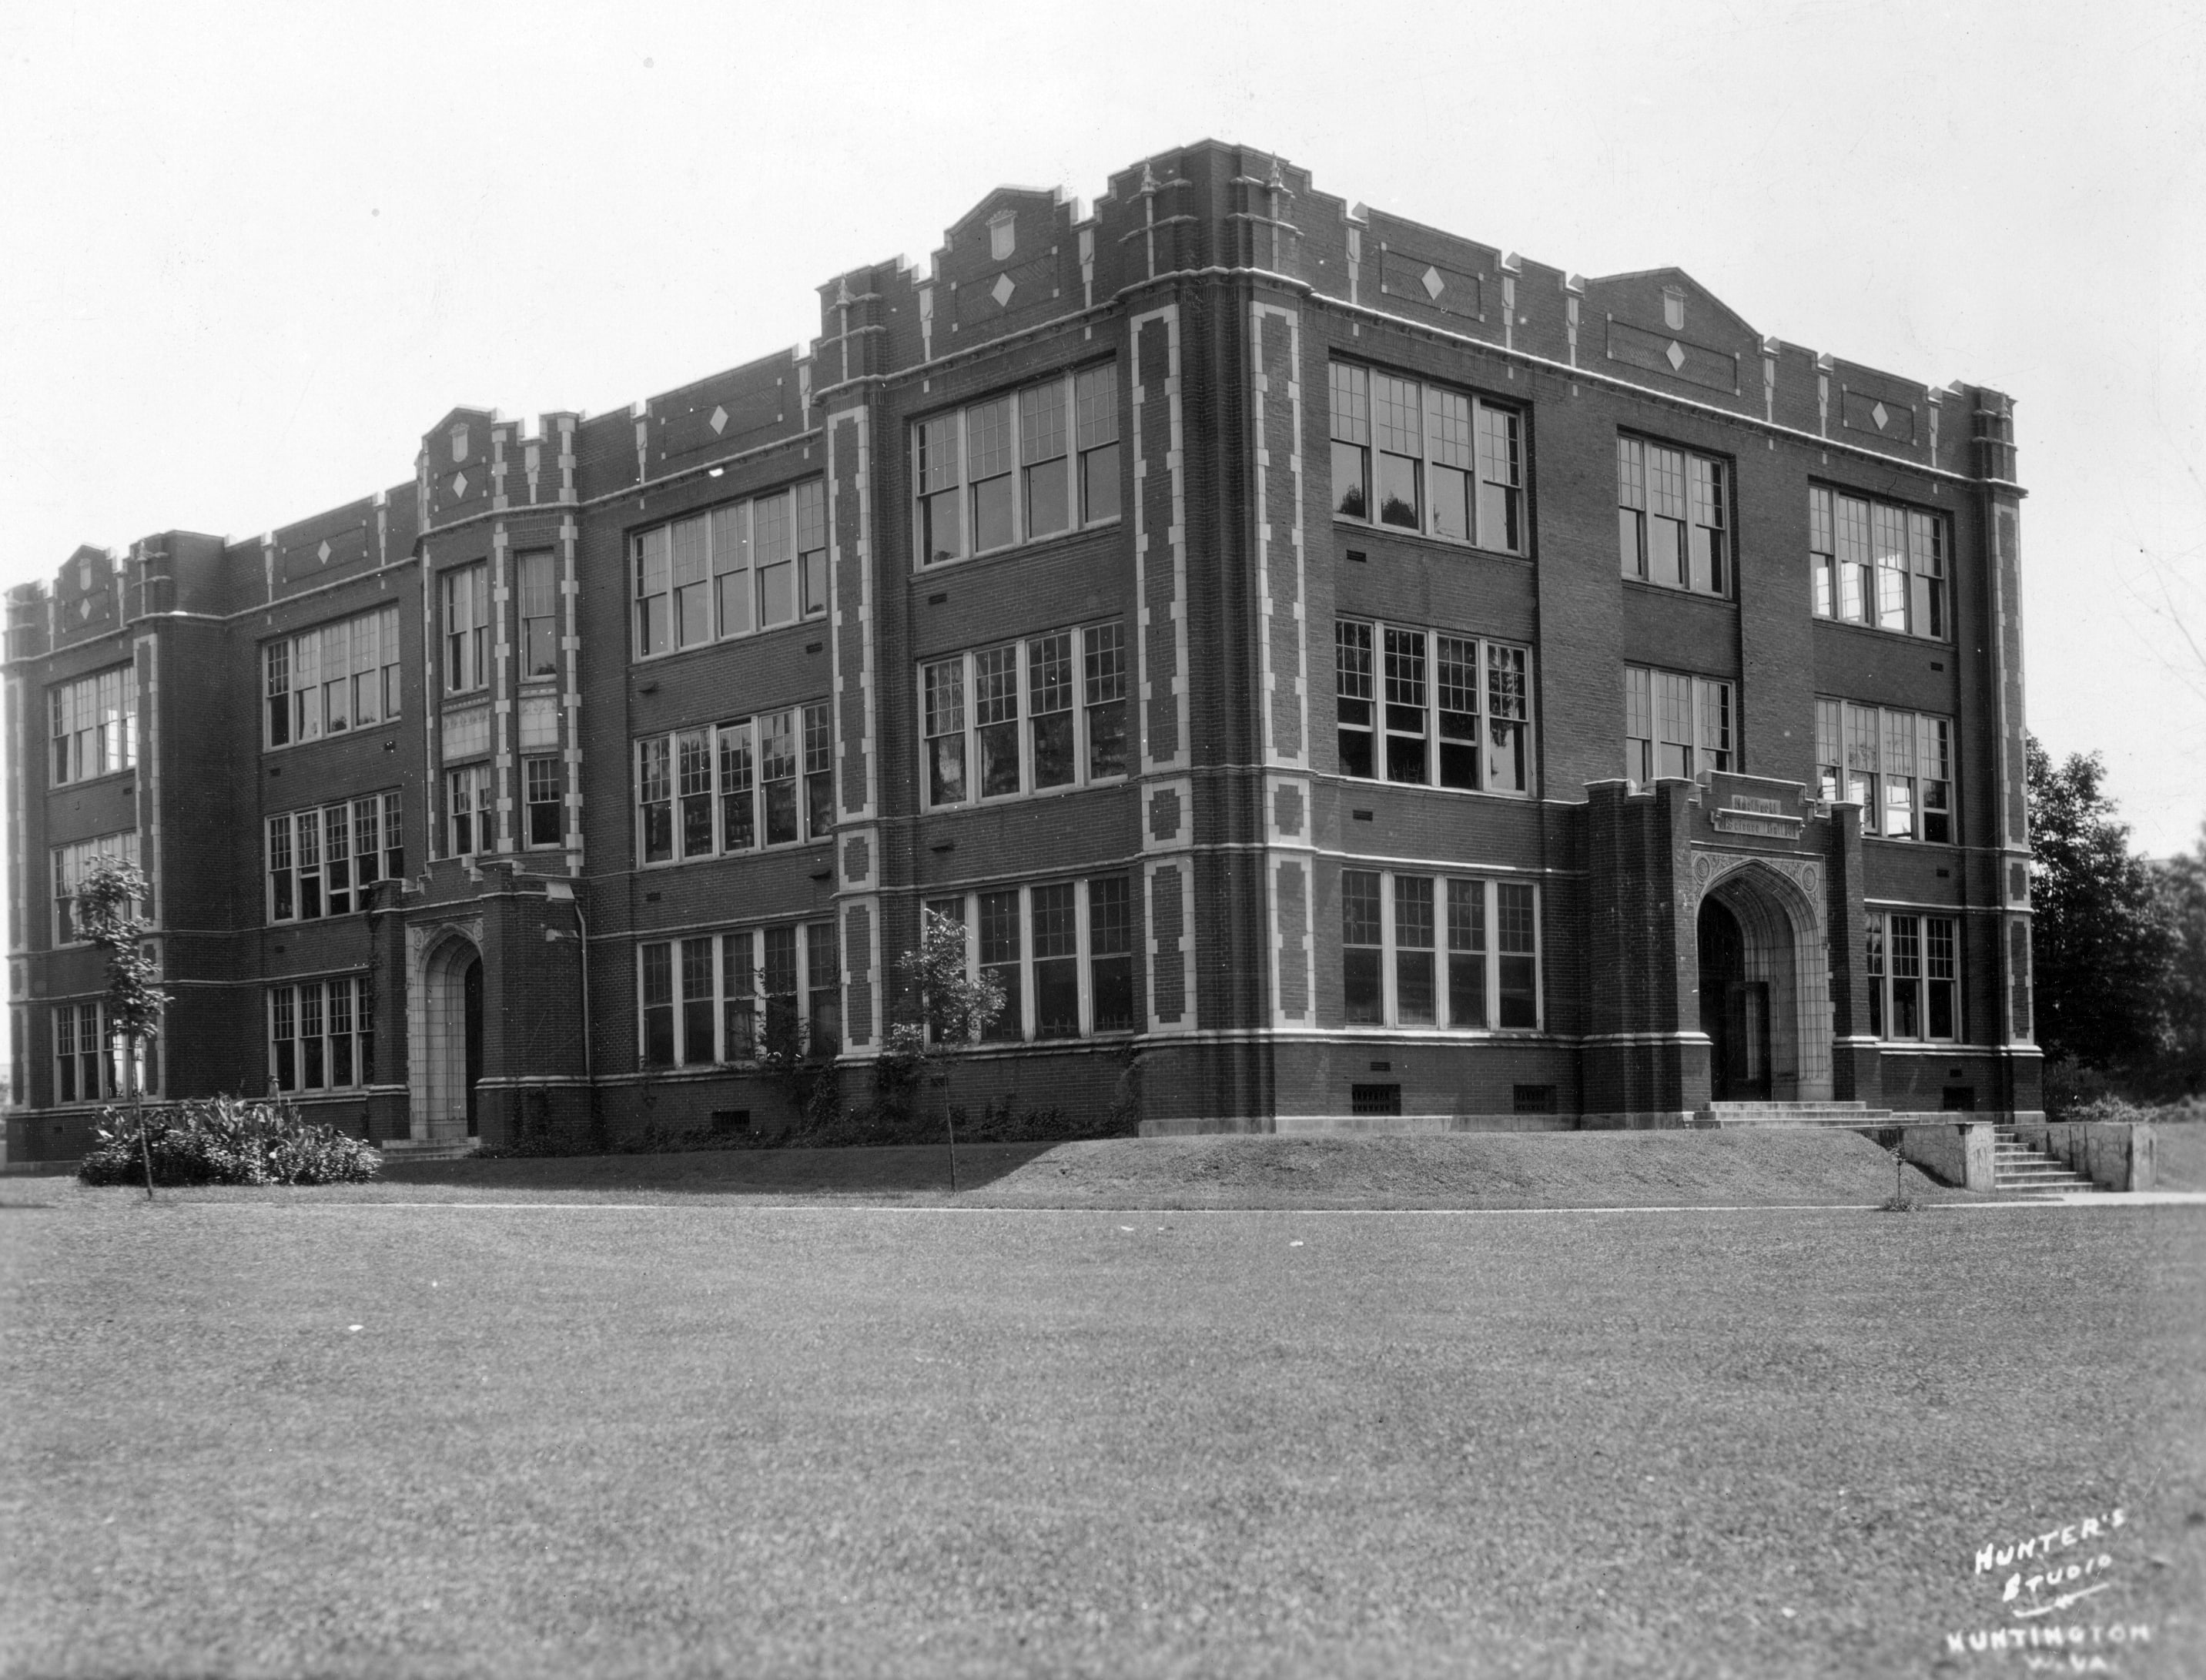 Northcott Hall was constructed in 1915 to house science classrooms and was the first building on campus separate from Old Main.